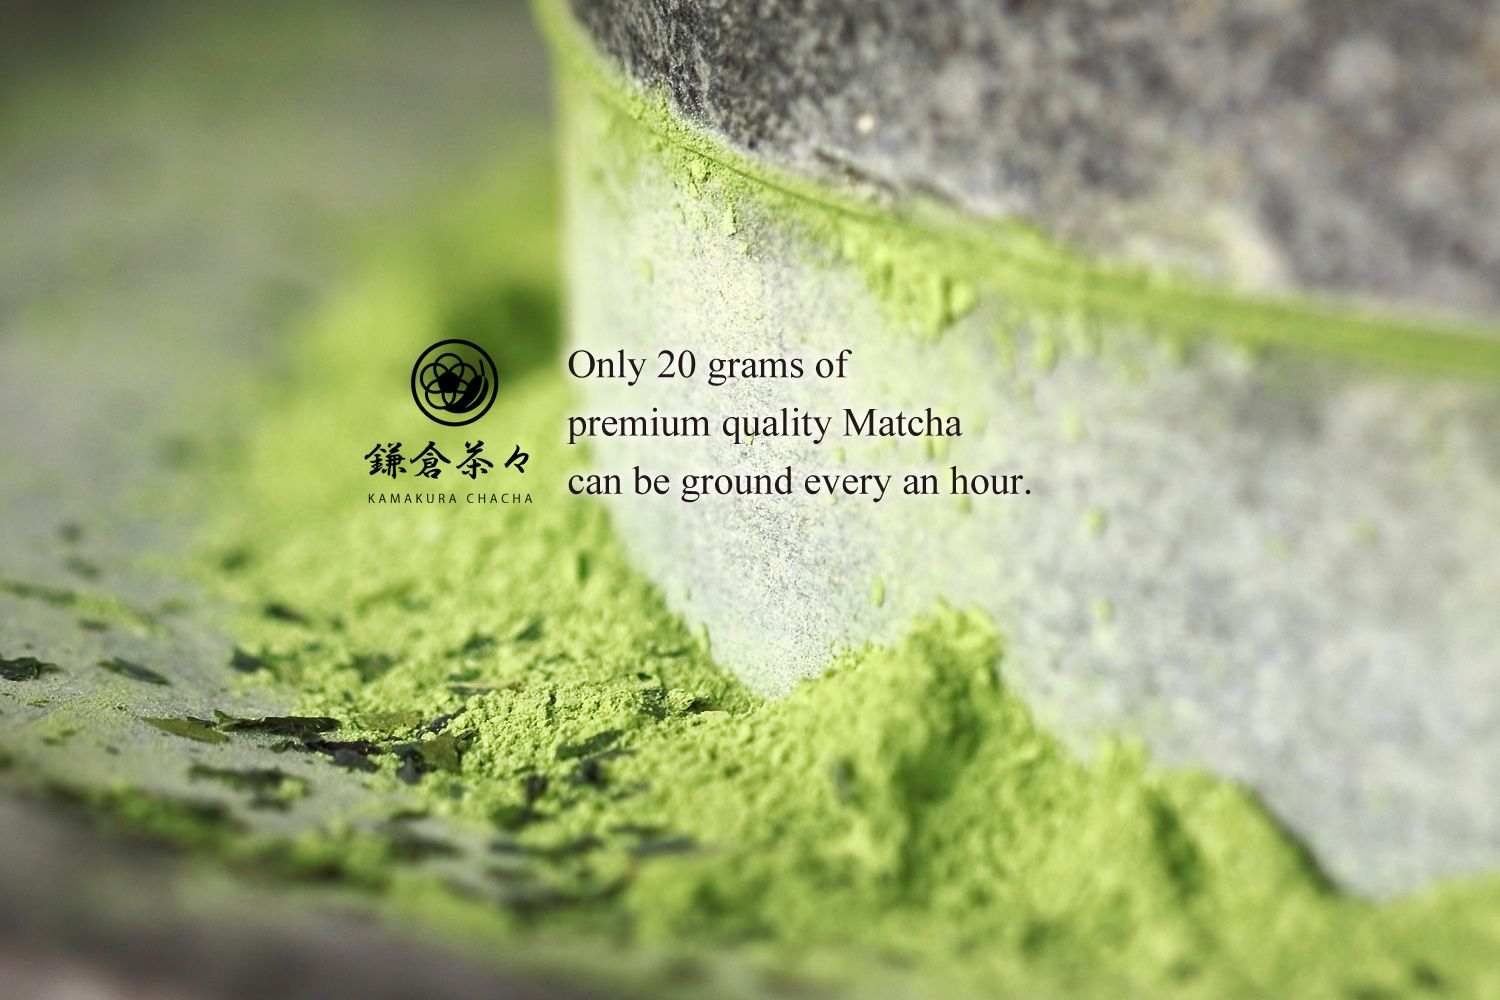 Only 20 grams of premium quality Matcha can be ground every an hour.